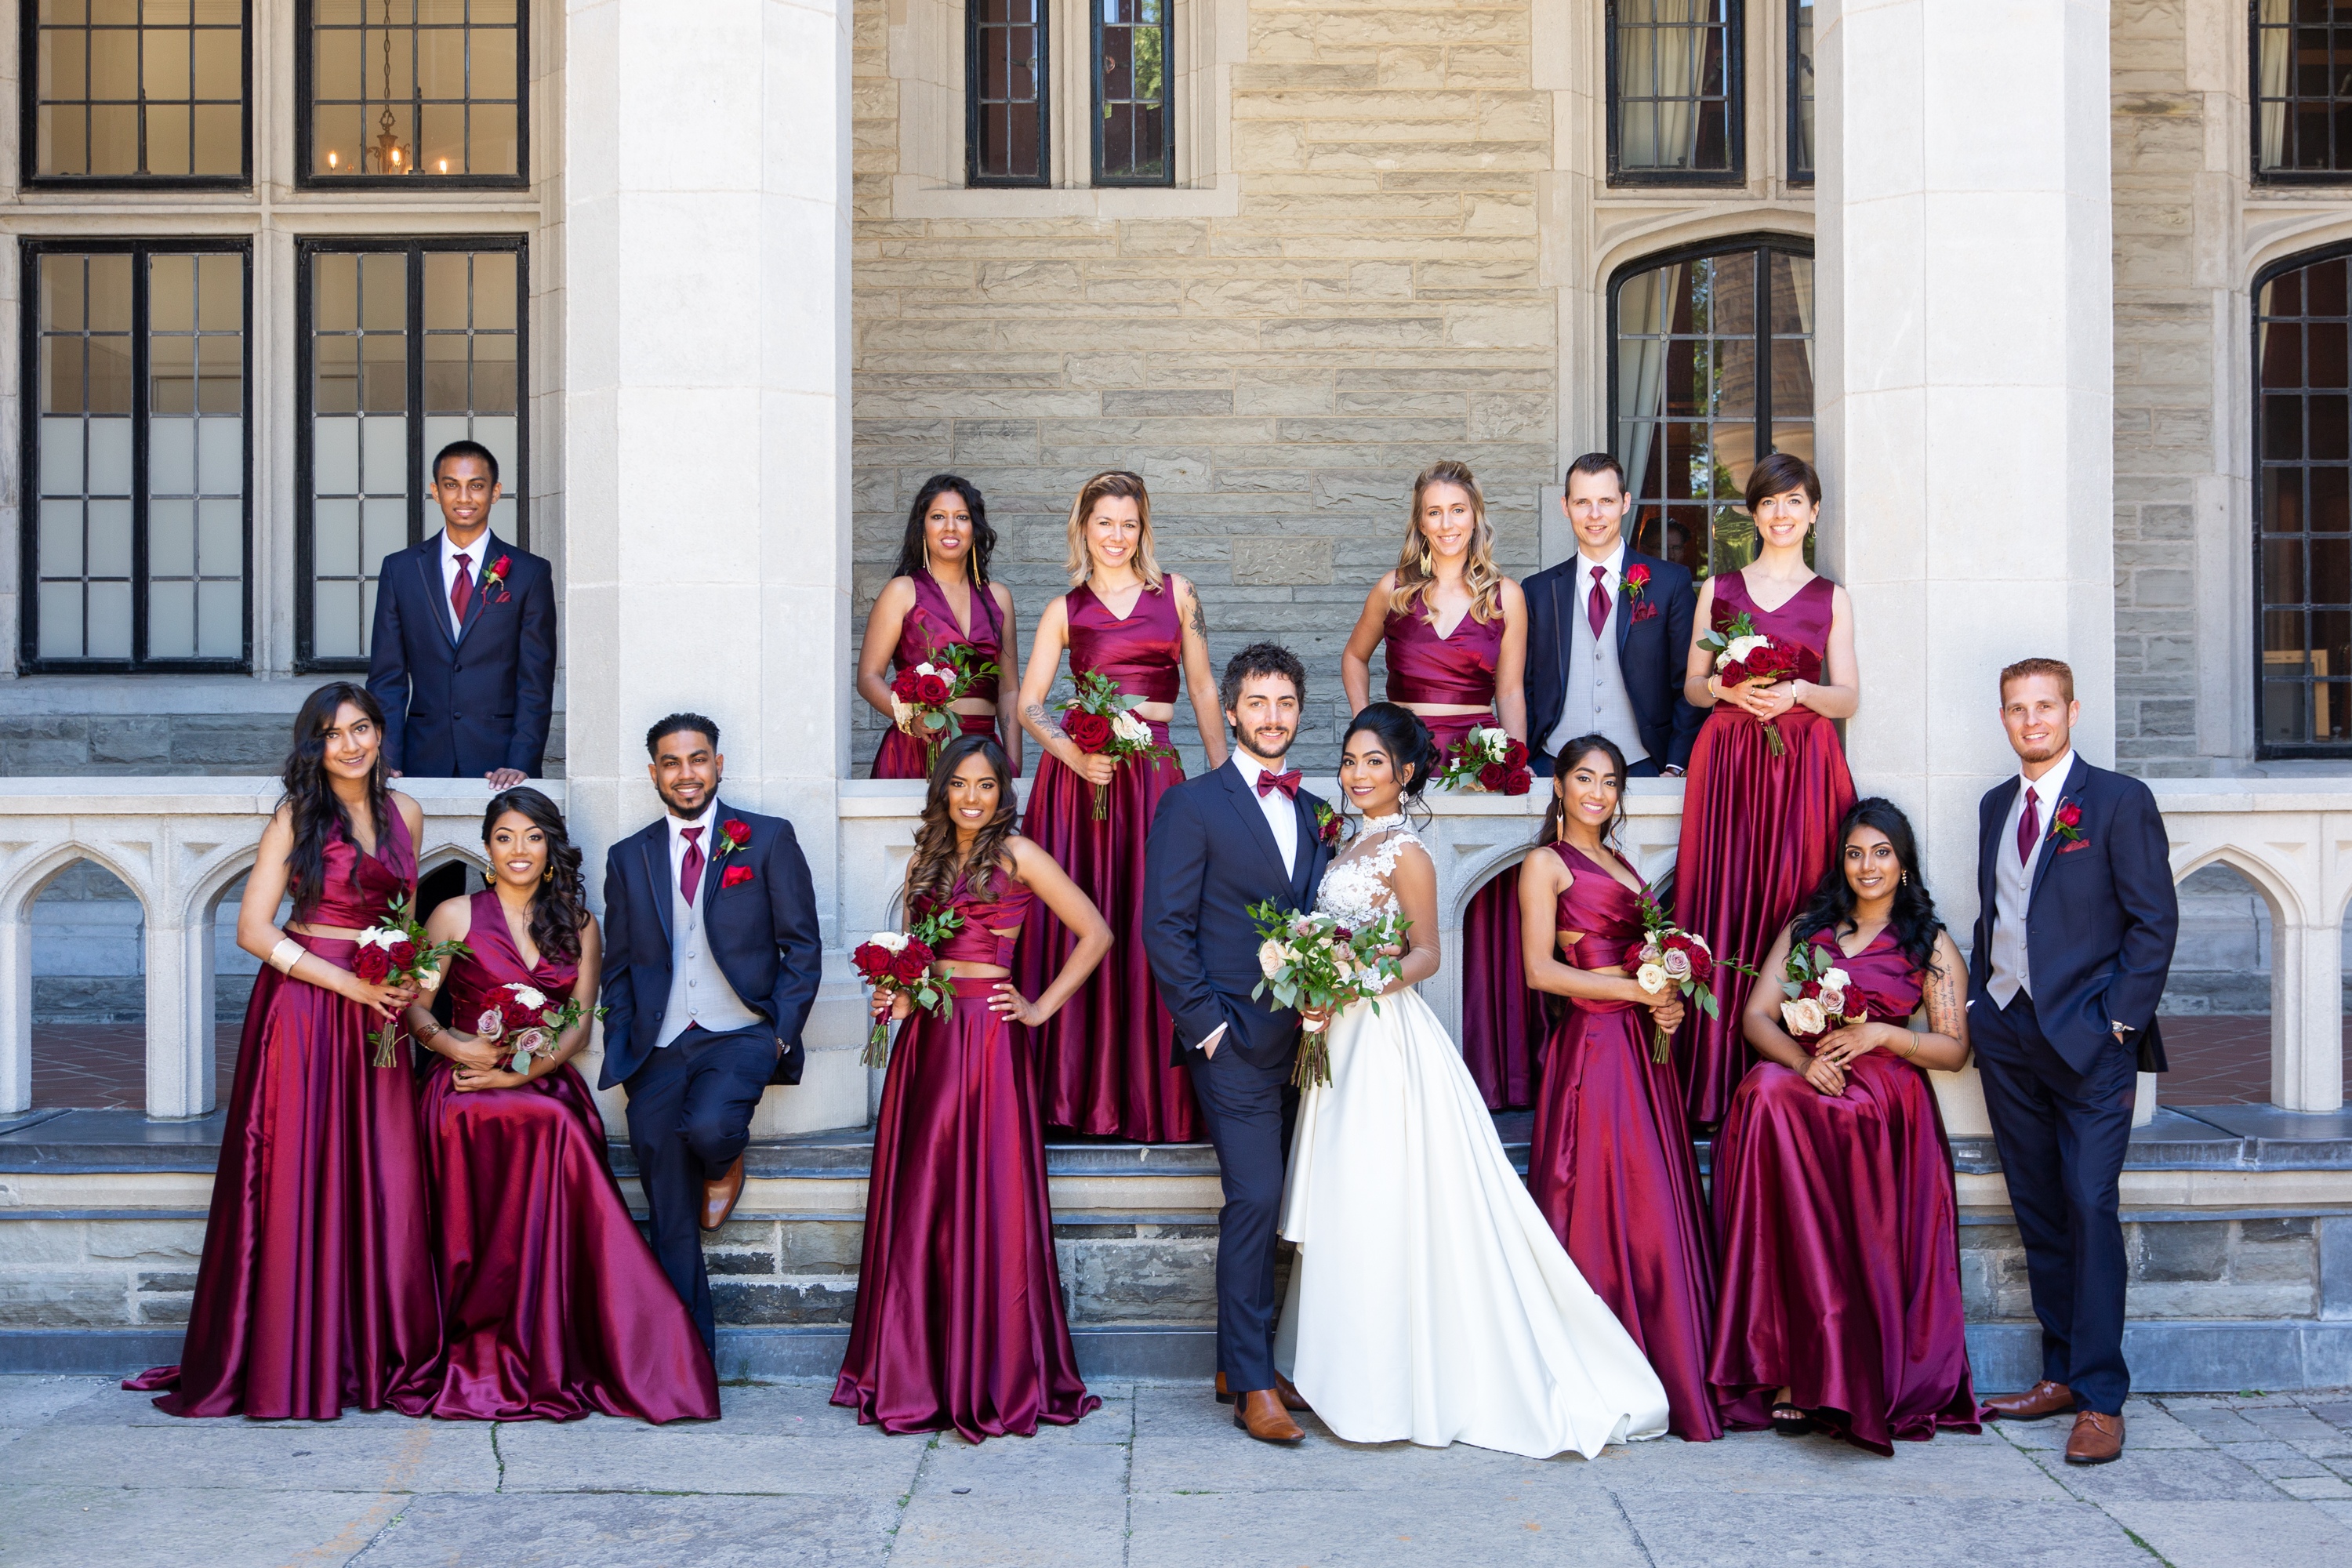 Wedding Party Casa Loma Zsuzsi Pal Photography Toronto Wedding